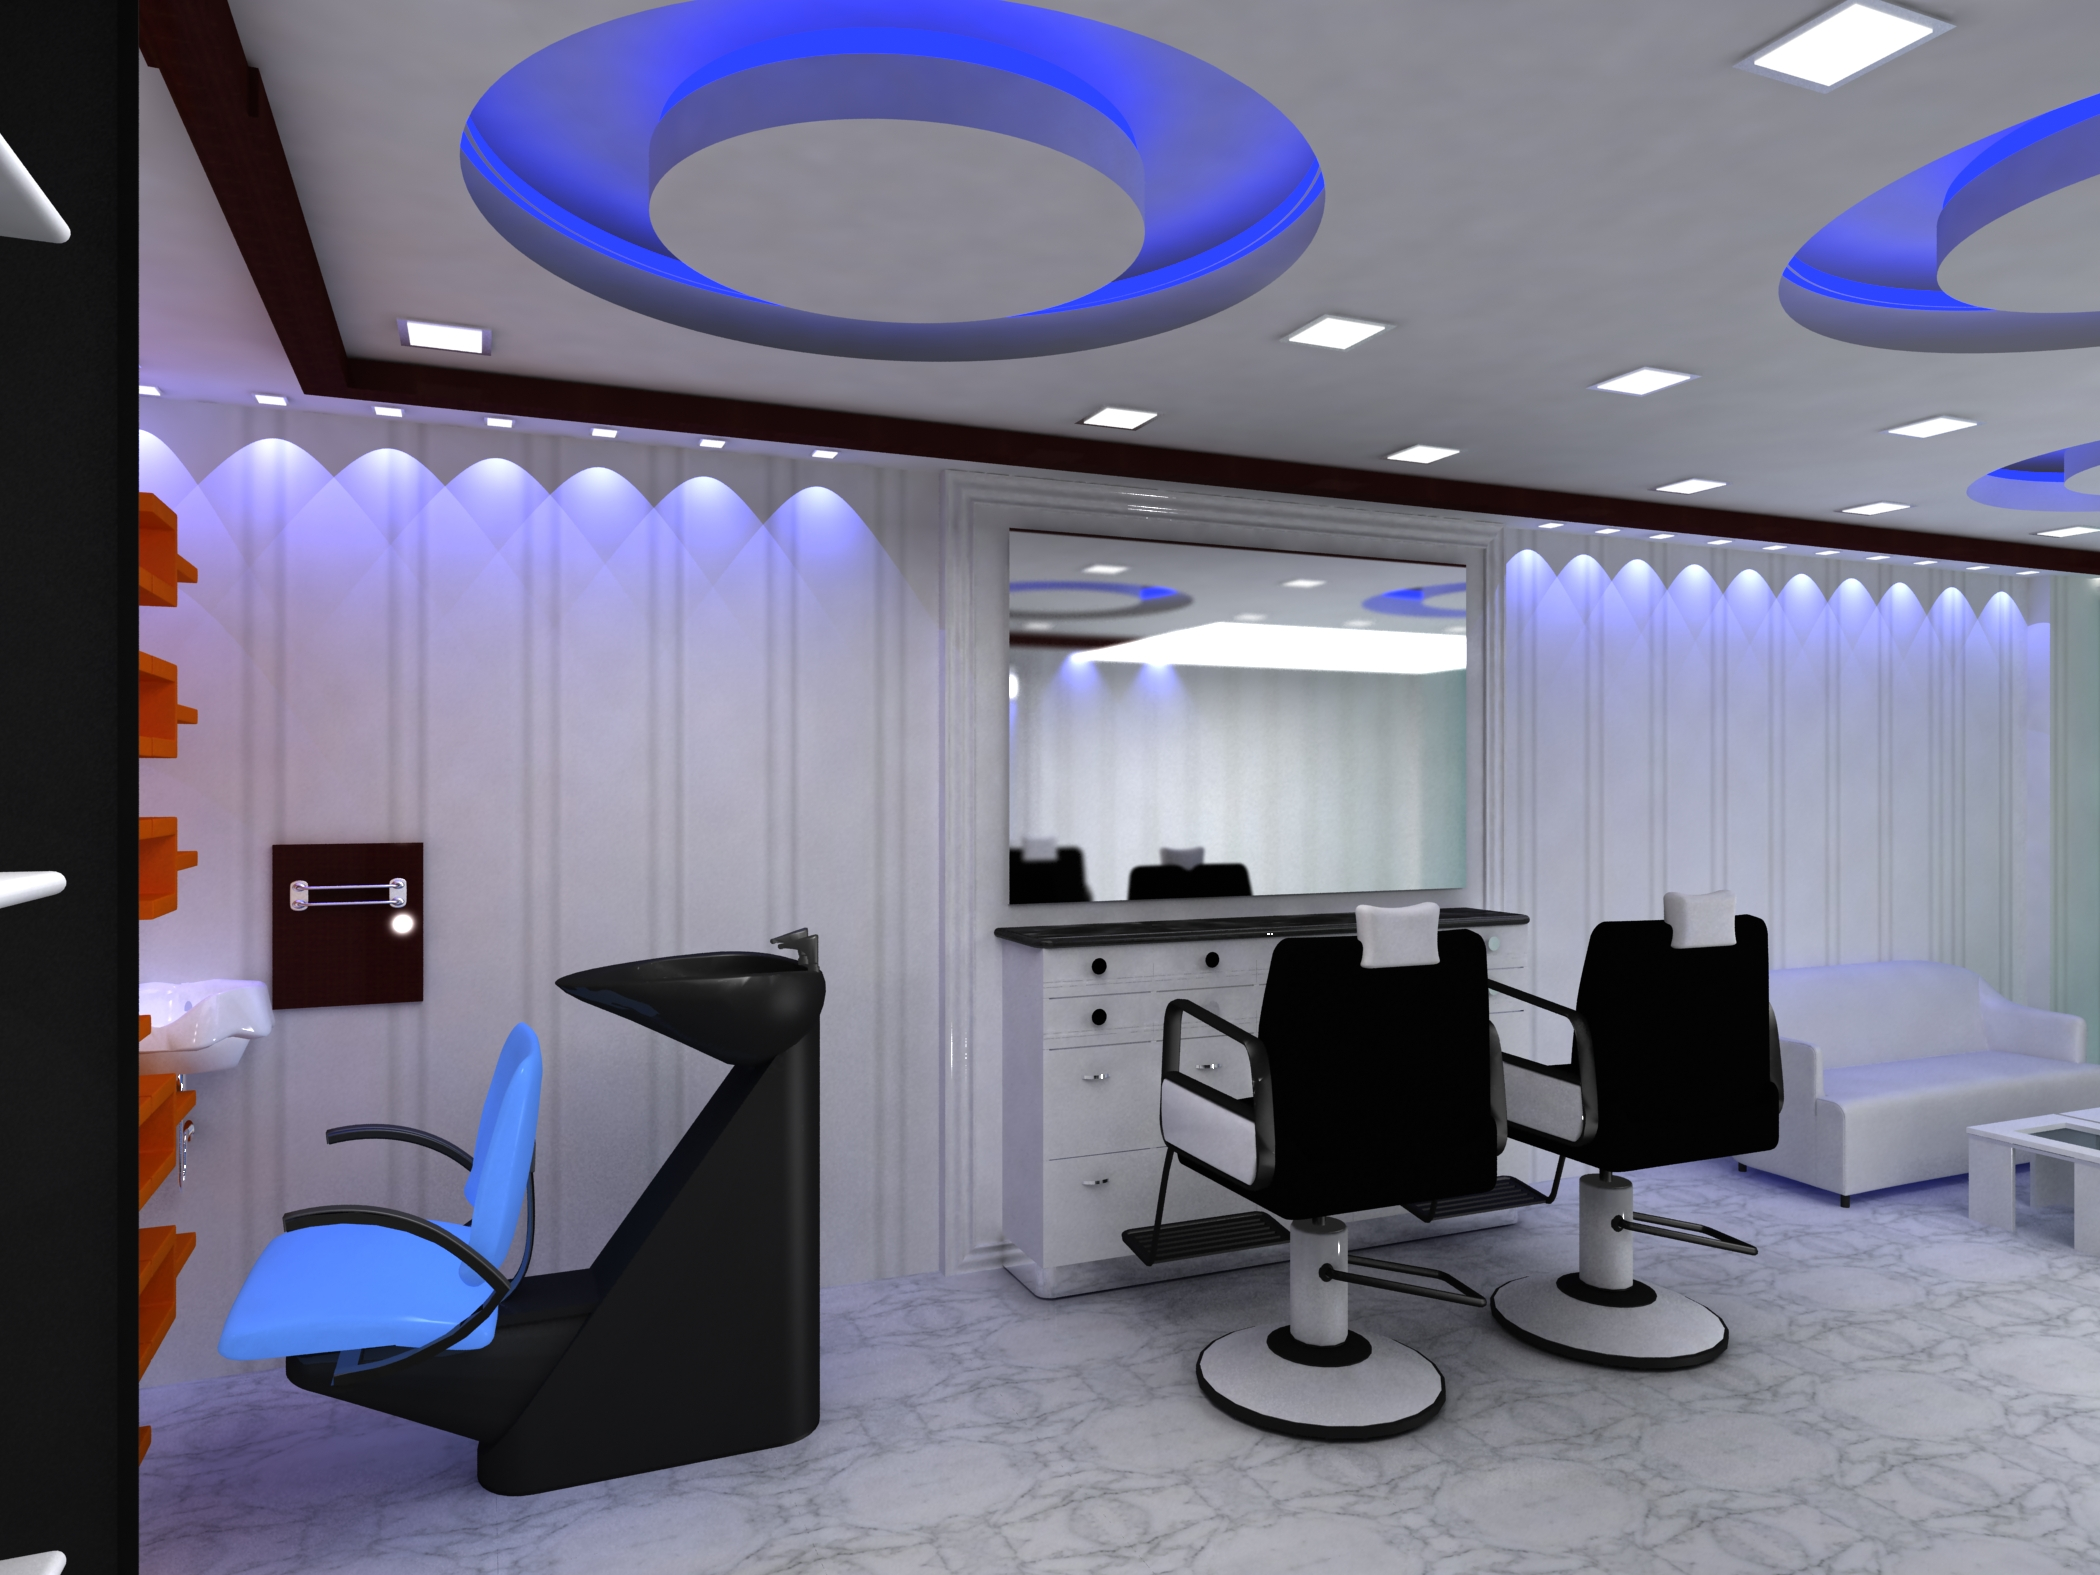 Designing Interiors For A Hair Salon Interiordecorationdubai